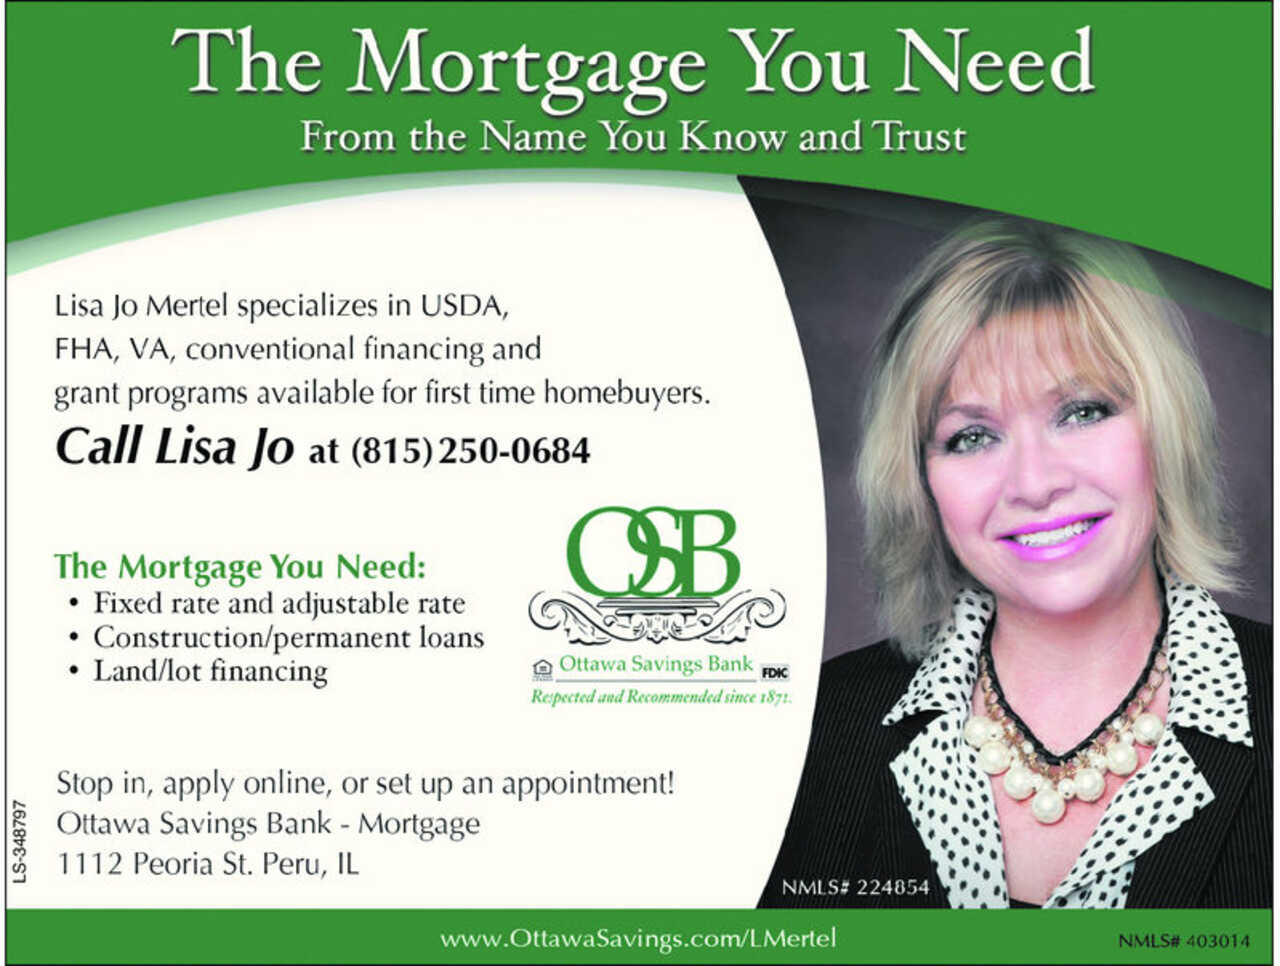 Ottawa Savings Bank - Lisa Jo Mertel - Finance - Mortgage Bankers in LaSalle IL